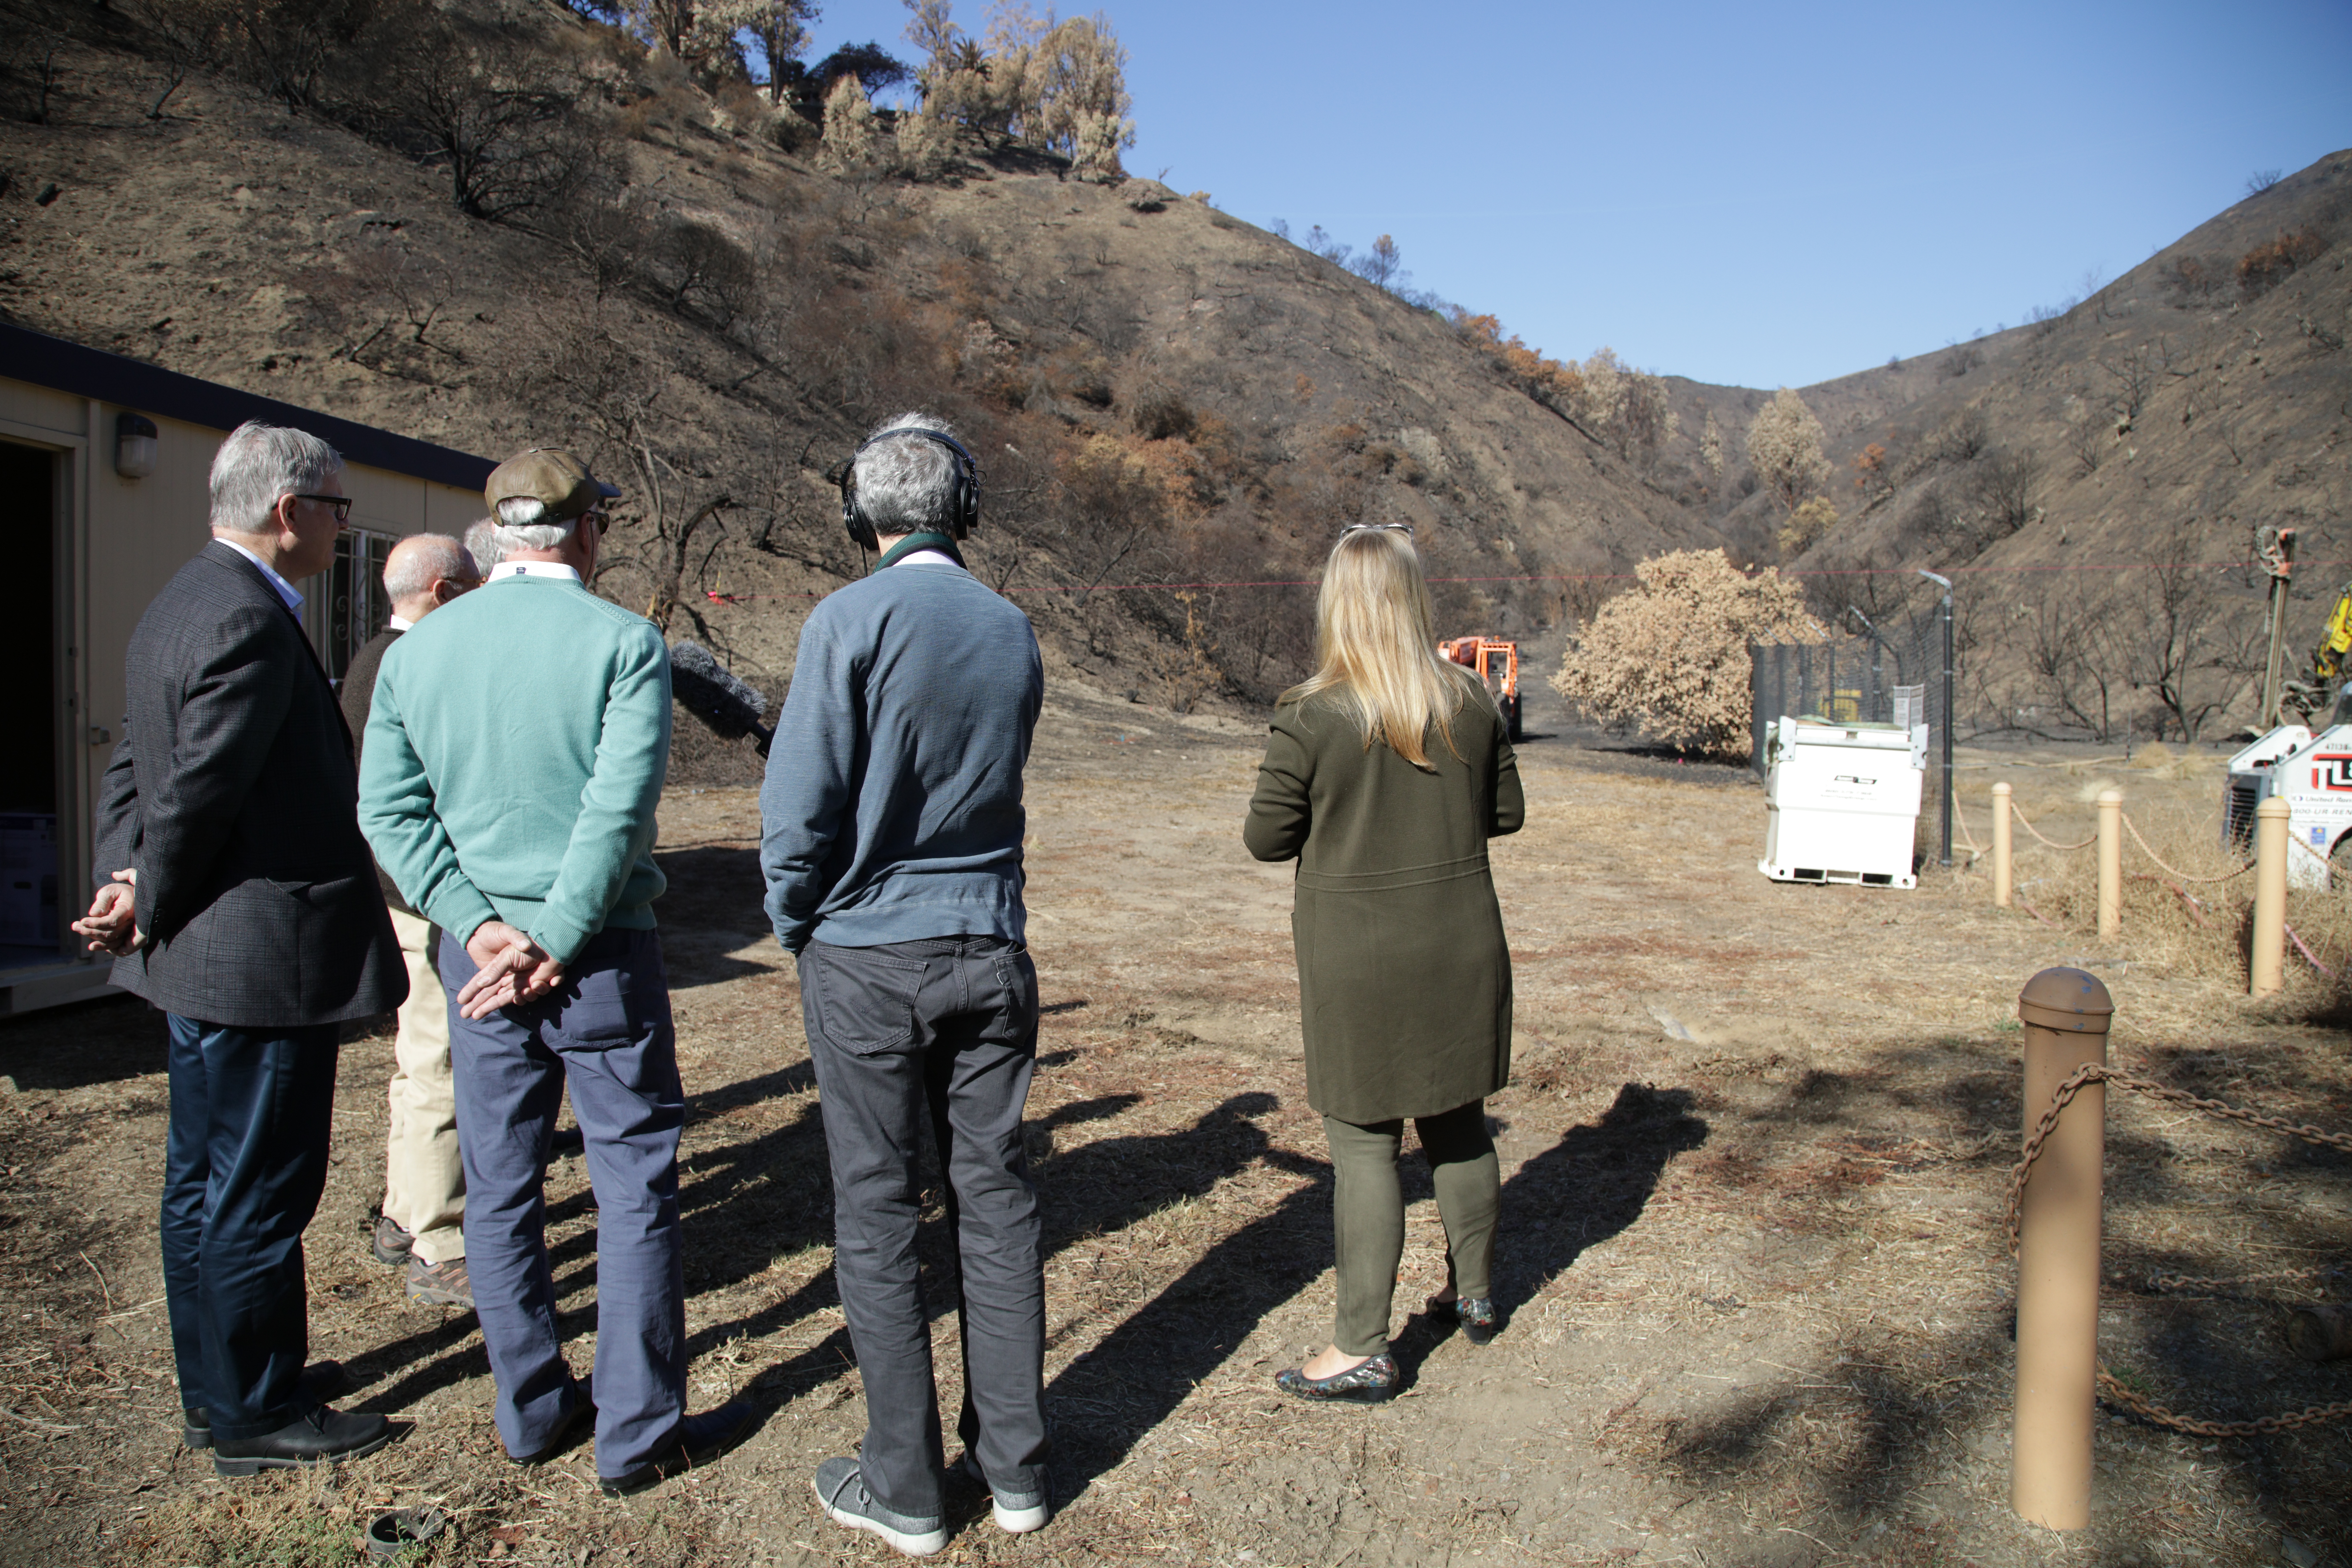 Steven Olsen, Jim Cuno, Bob Combs, Gideon Brower (audio producer), and Lisa Lapin view the construction site of new debris fences